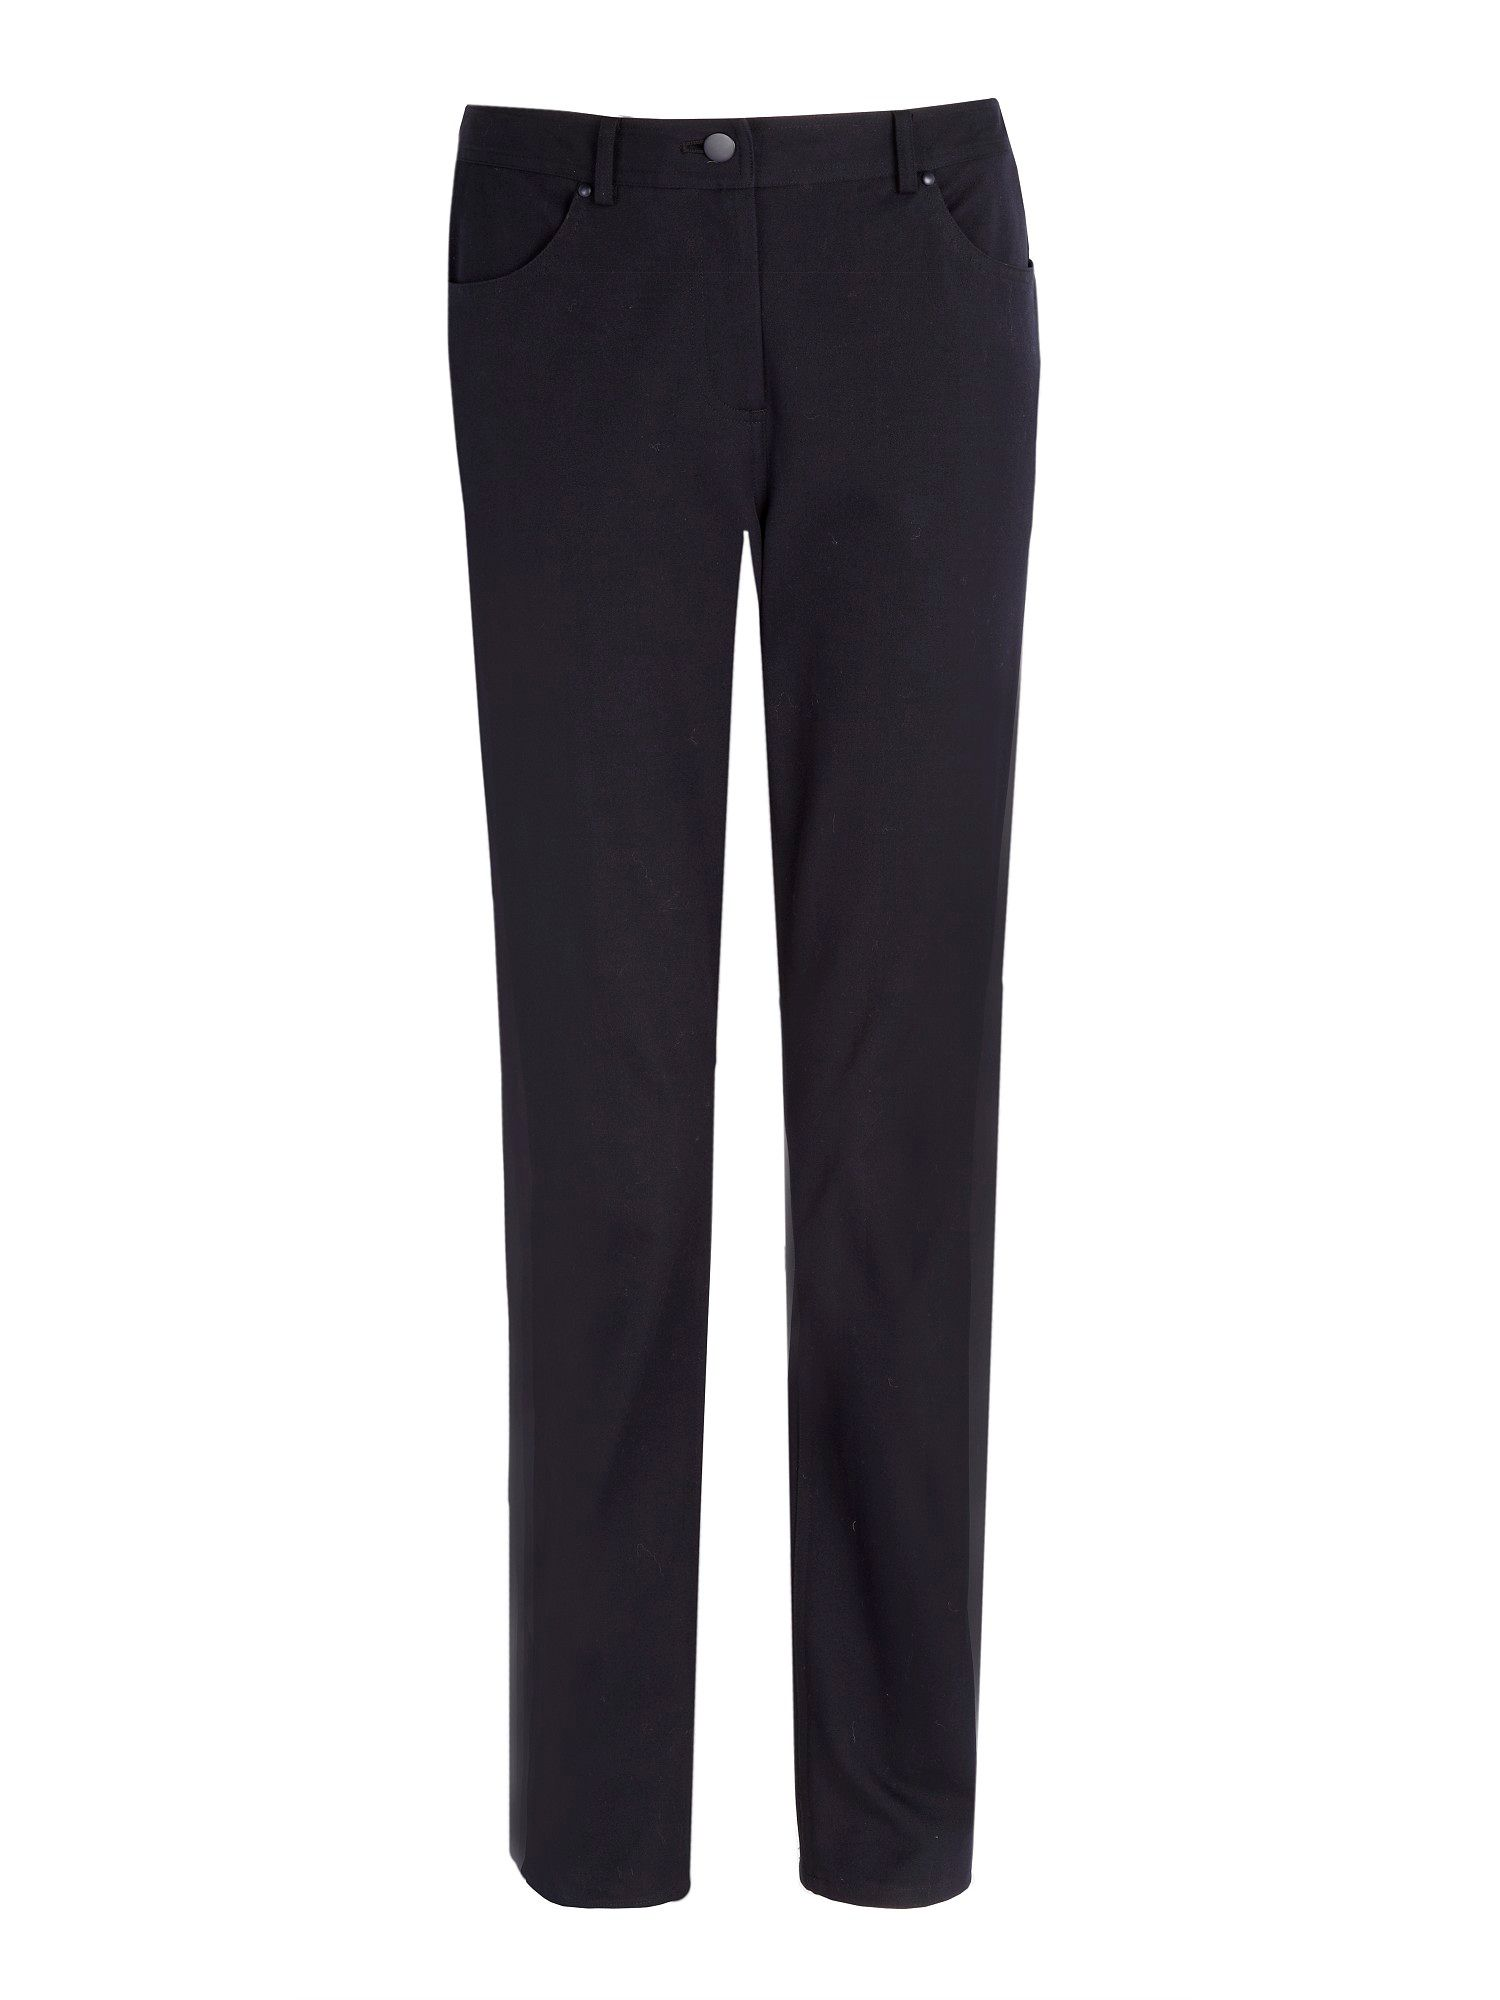 Navy stretch trouser